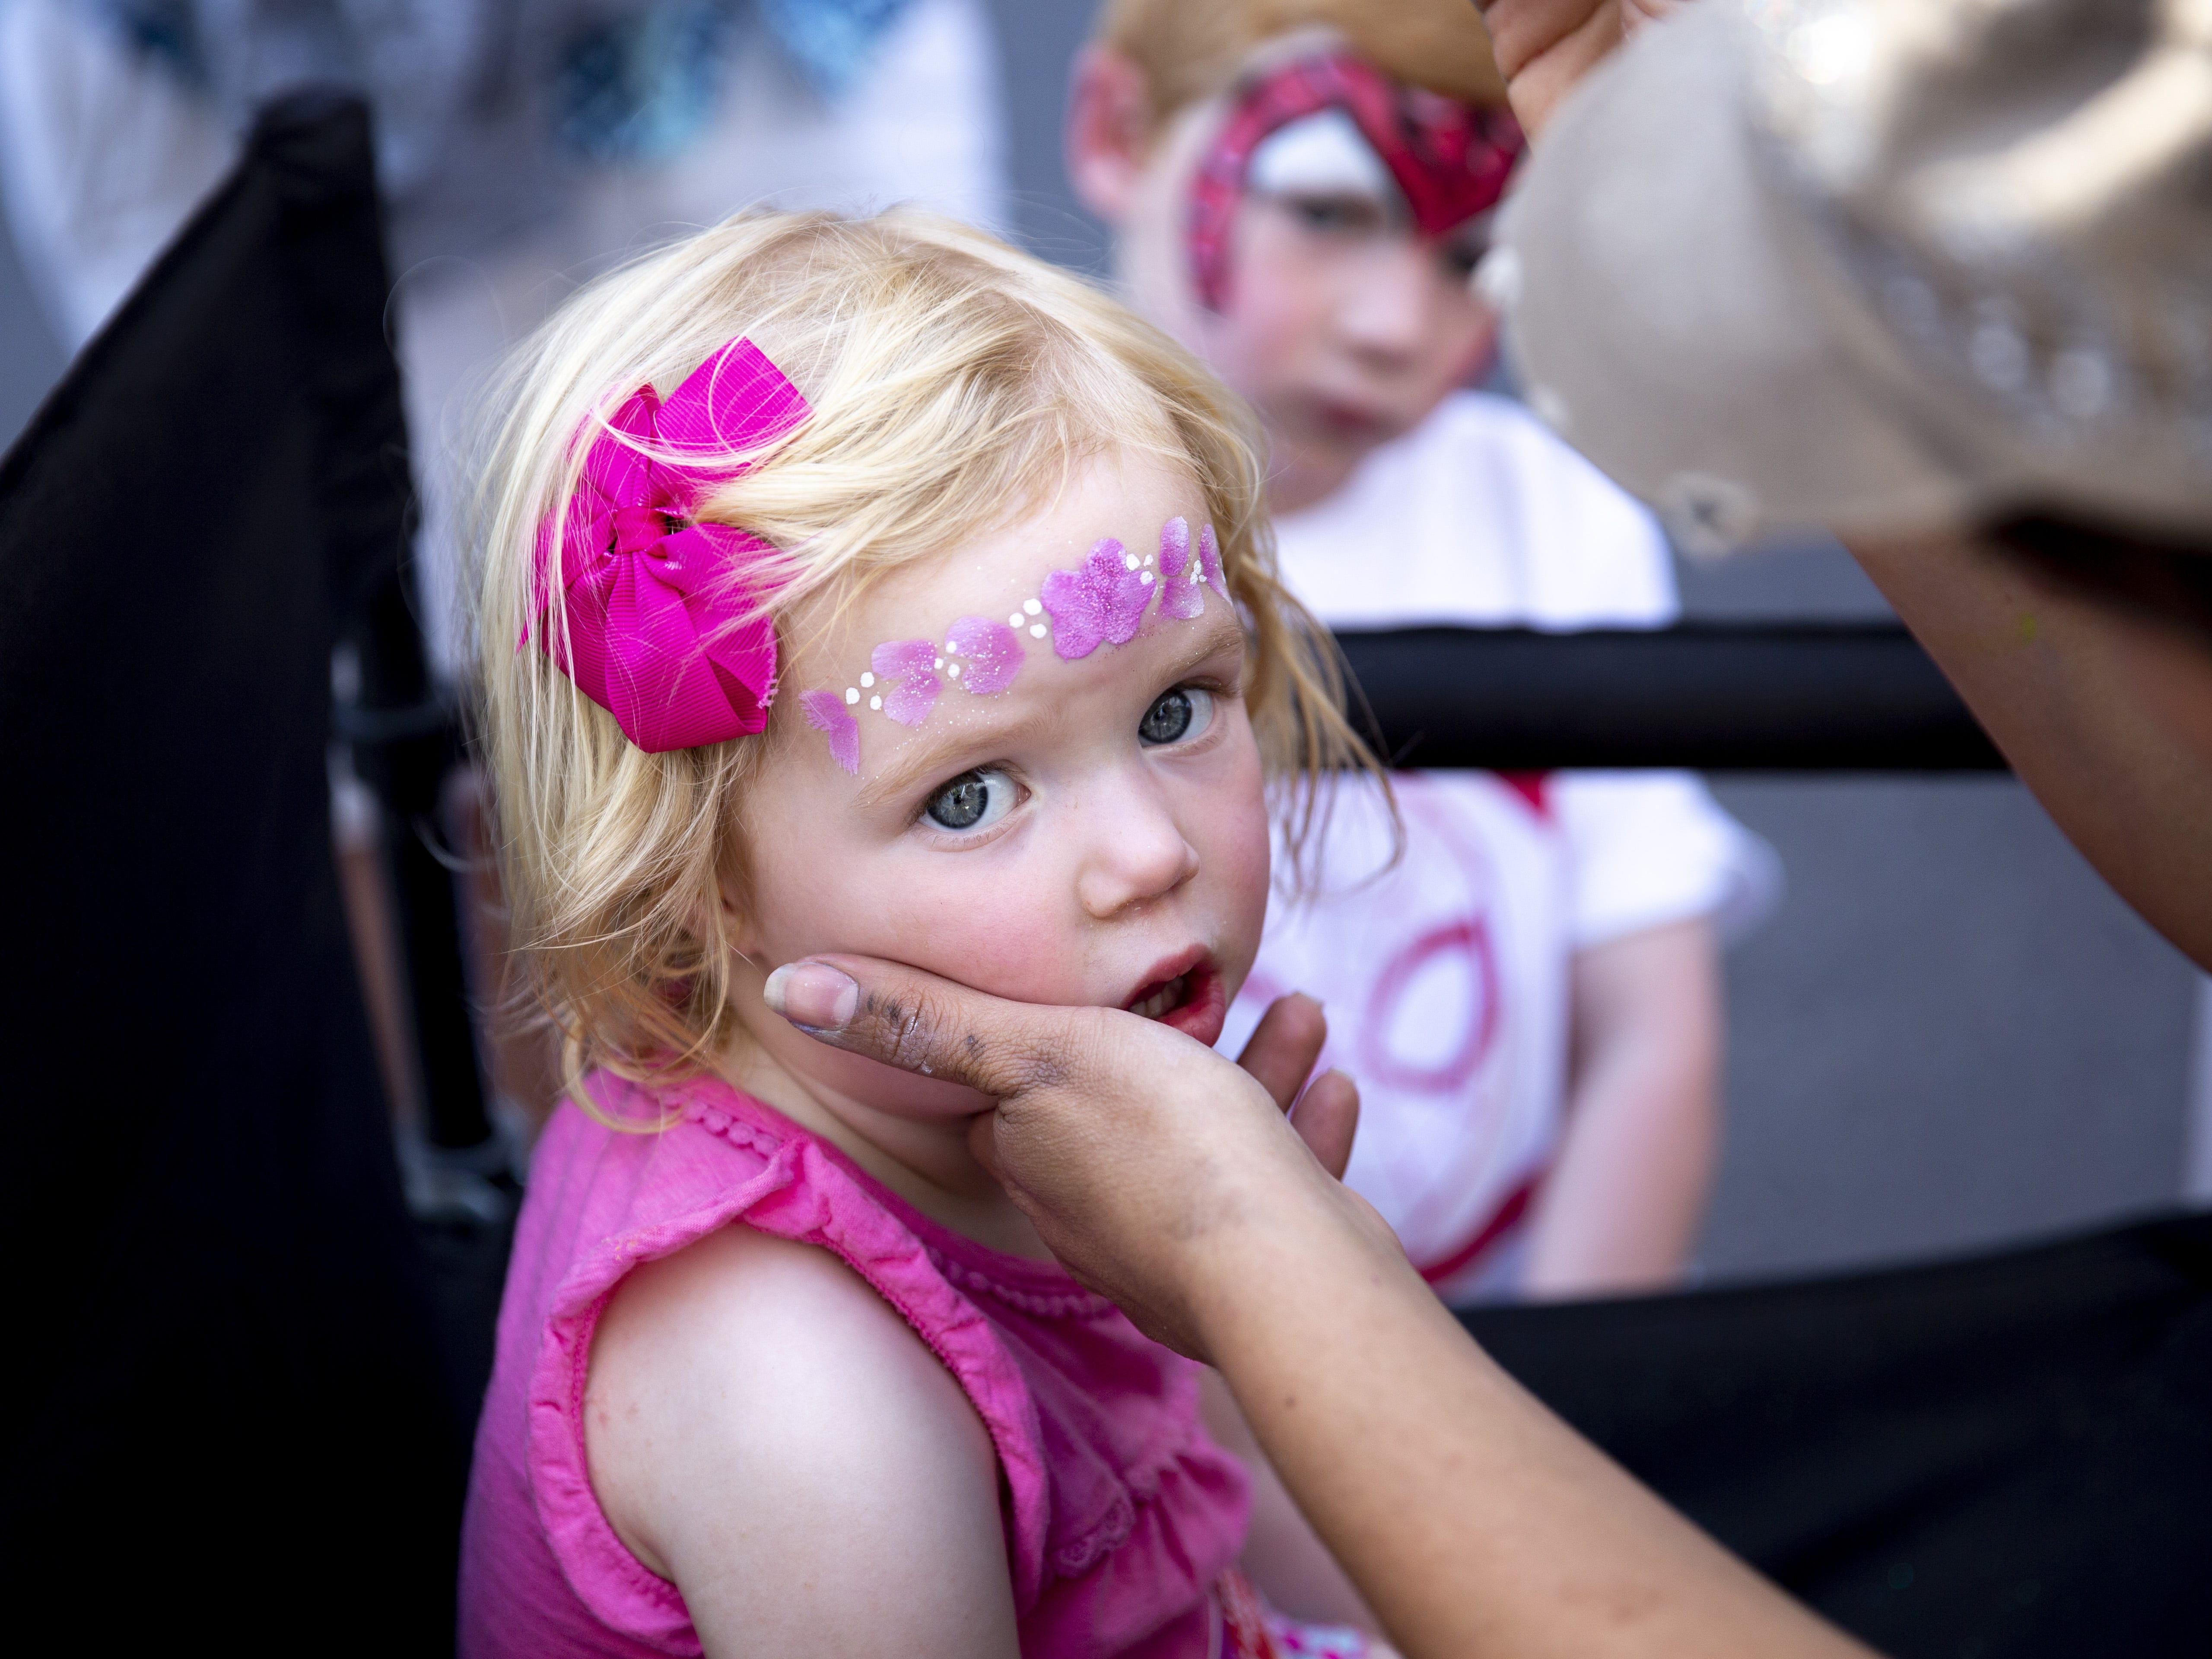 Harlow DeMeritt, 2, gets her face painted at the kids block, located between Fifth and Sixth Streets, during the Spring Tempe Festival of the Arts on Saturday, March 30, 2019.